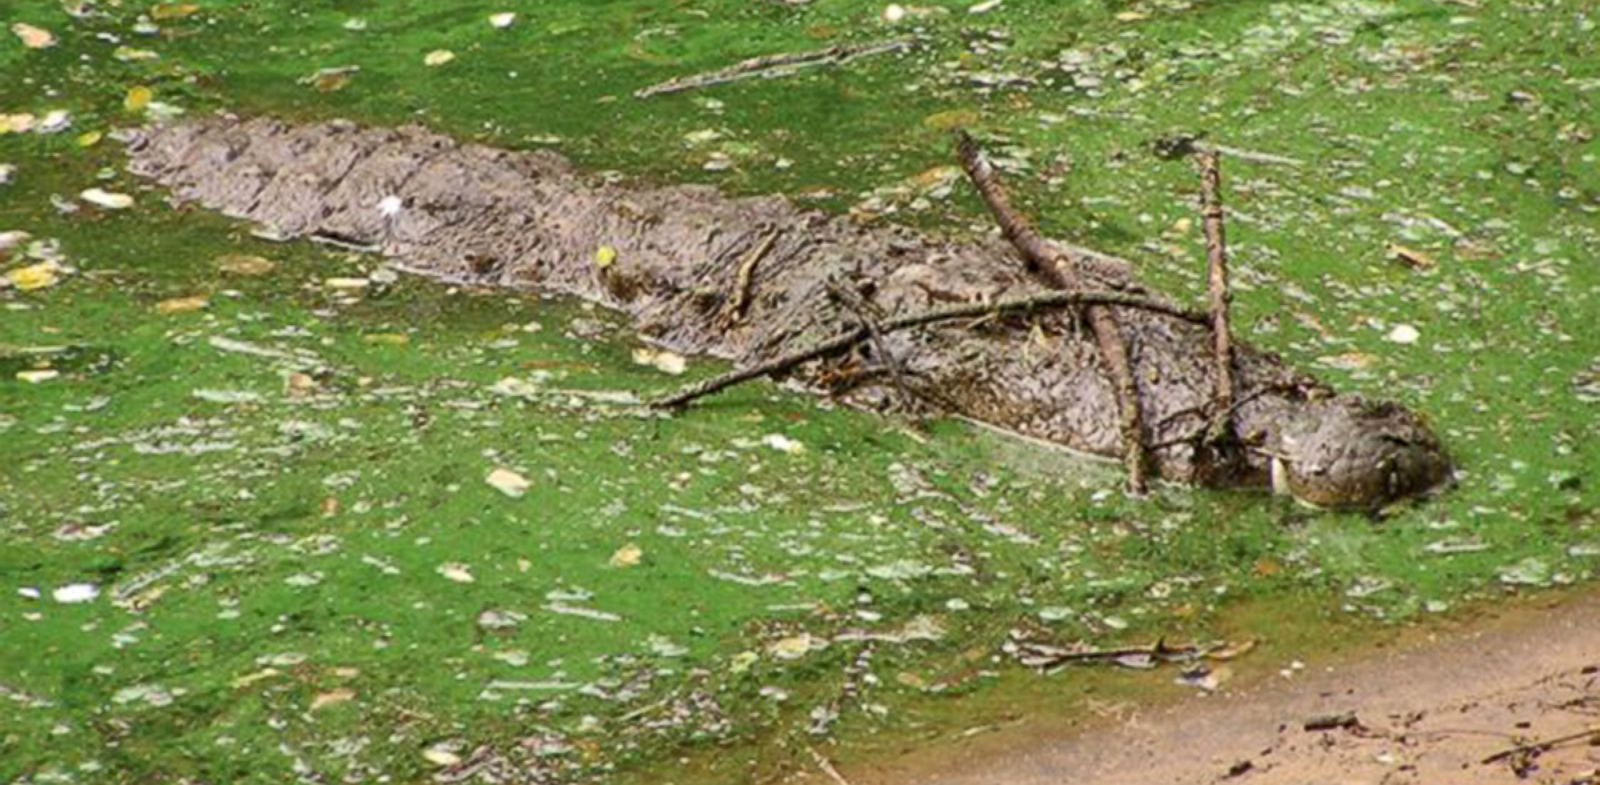 PHOTO: Crocodiles and alligators have been found to balance sticks on their snouts as a way to lure nest-building birds into reach of their jaws.